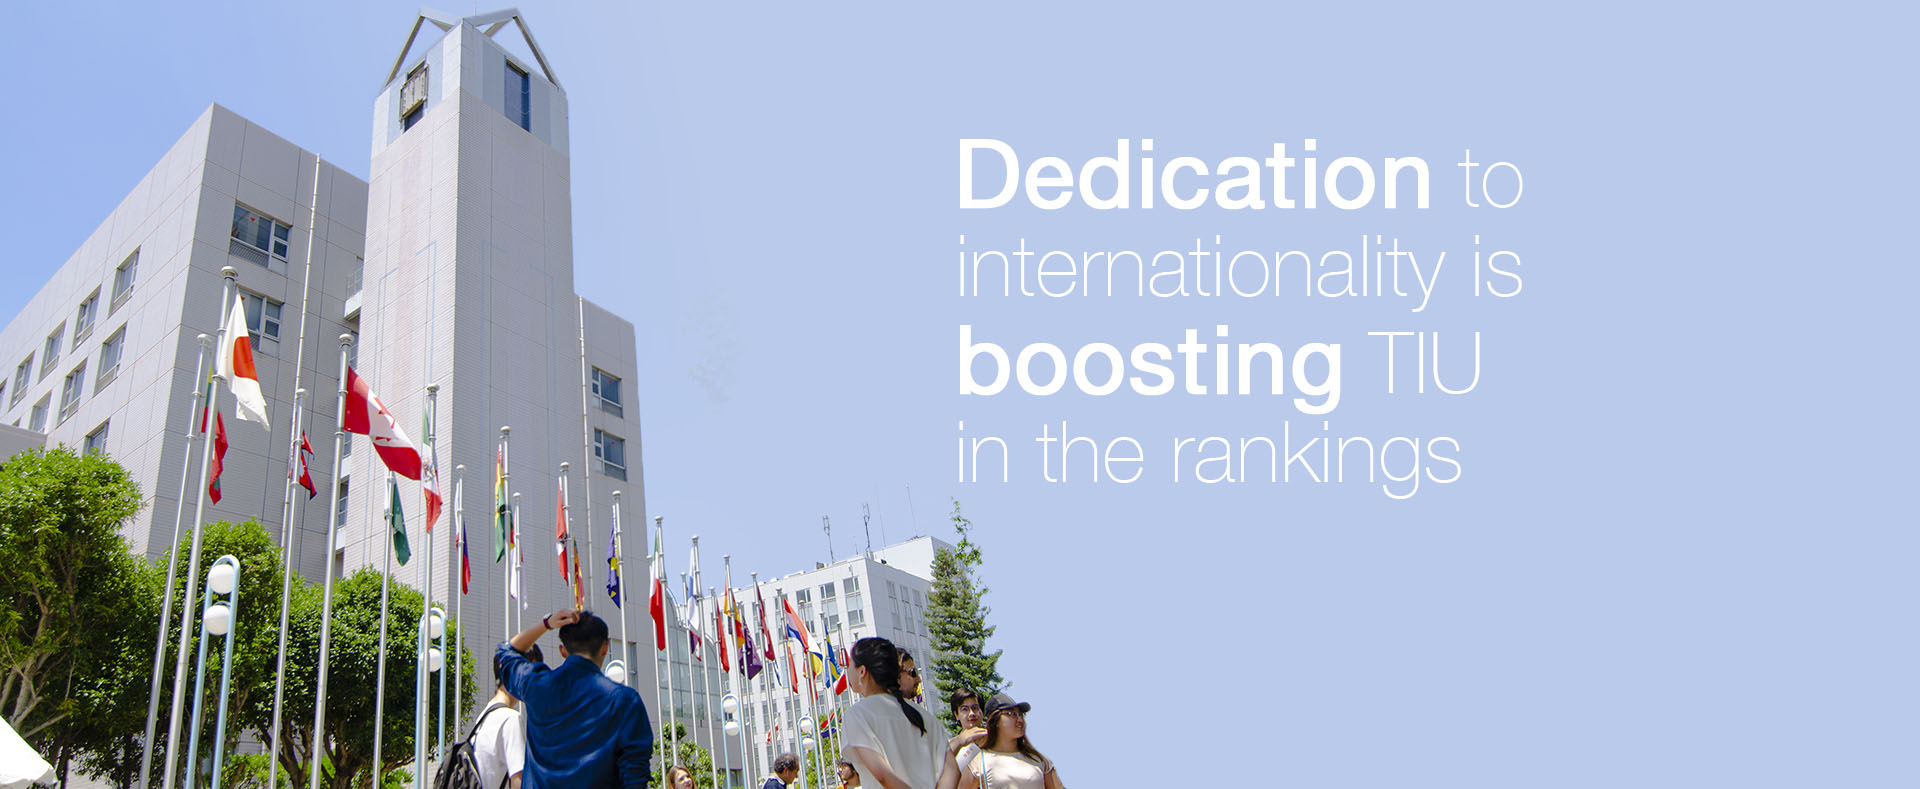 TIU is rising in the rankings through dedication to internationality.